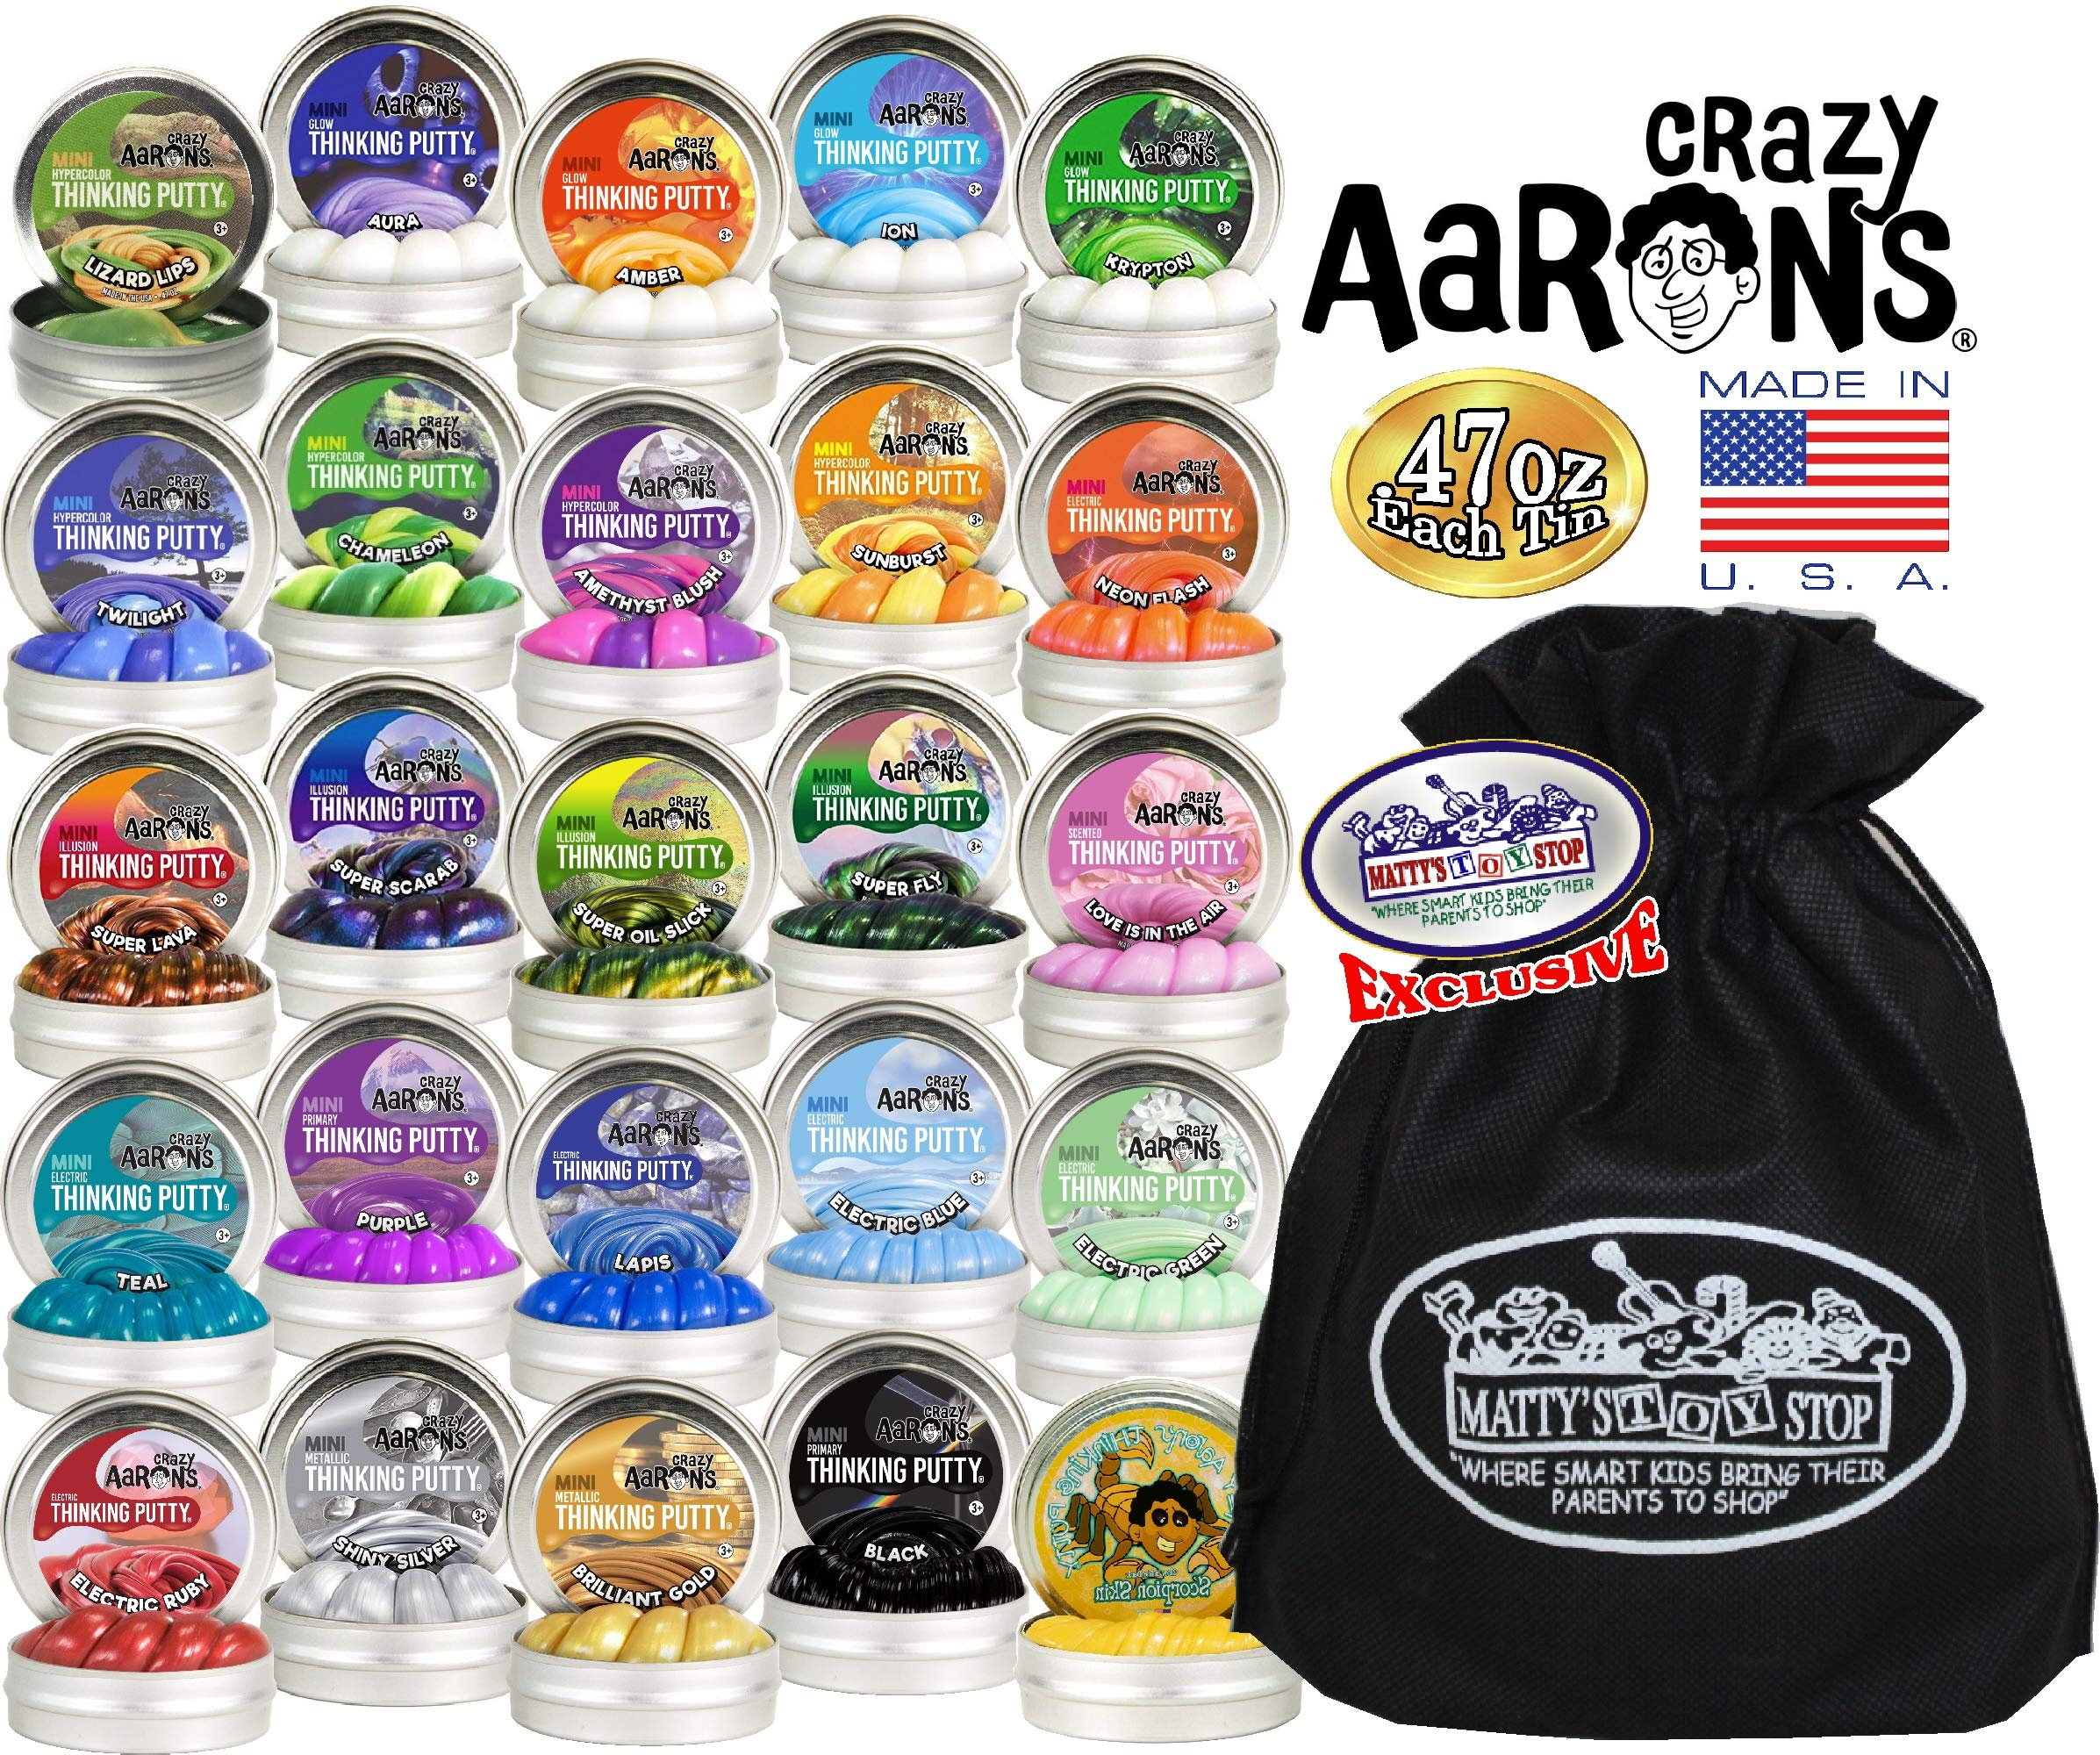 Crazy Aaron's Thinking Putty Mini Tins Deluxe Gift Set Bundle Featuring Glow, Hypercolor, Super Illusions, Scented, Electric, Primary, Metallic & Exclusive Matty's Toy Stop Bag - 25 Pack (.47 oz each) by Crazy Aaron's (Image #1)